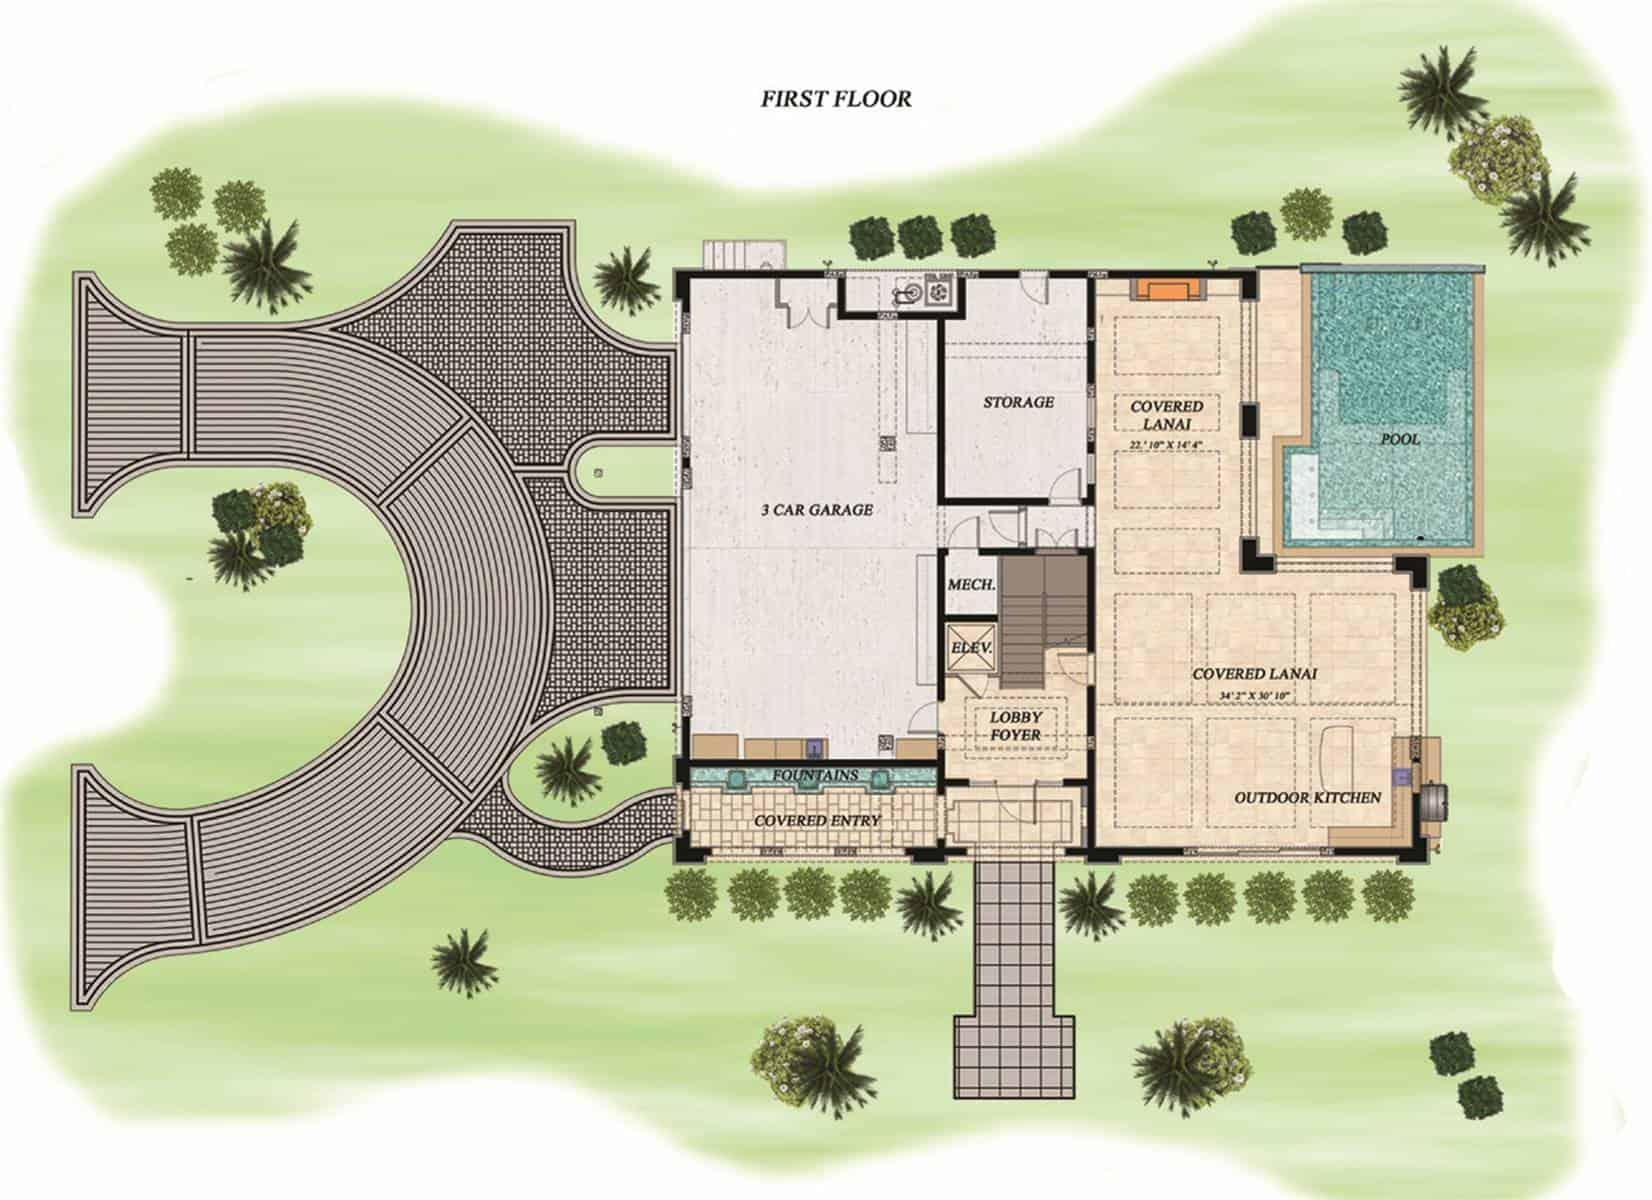 Main level floor plan of a three-story 4-bedroom west winds beach style home with 3-car garage, large storage room, lobby foyer, outdoor kitchen, and covered lanais by the pool.